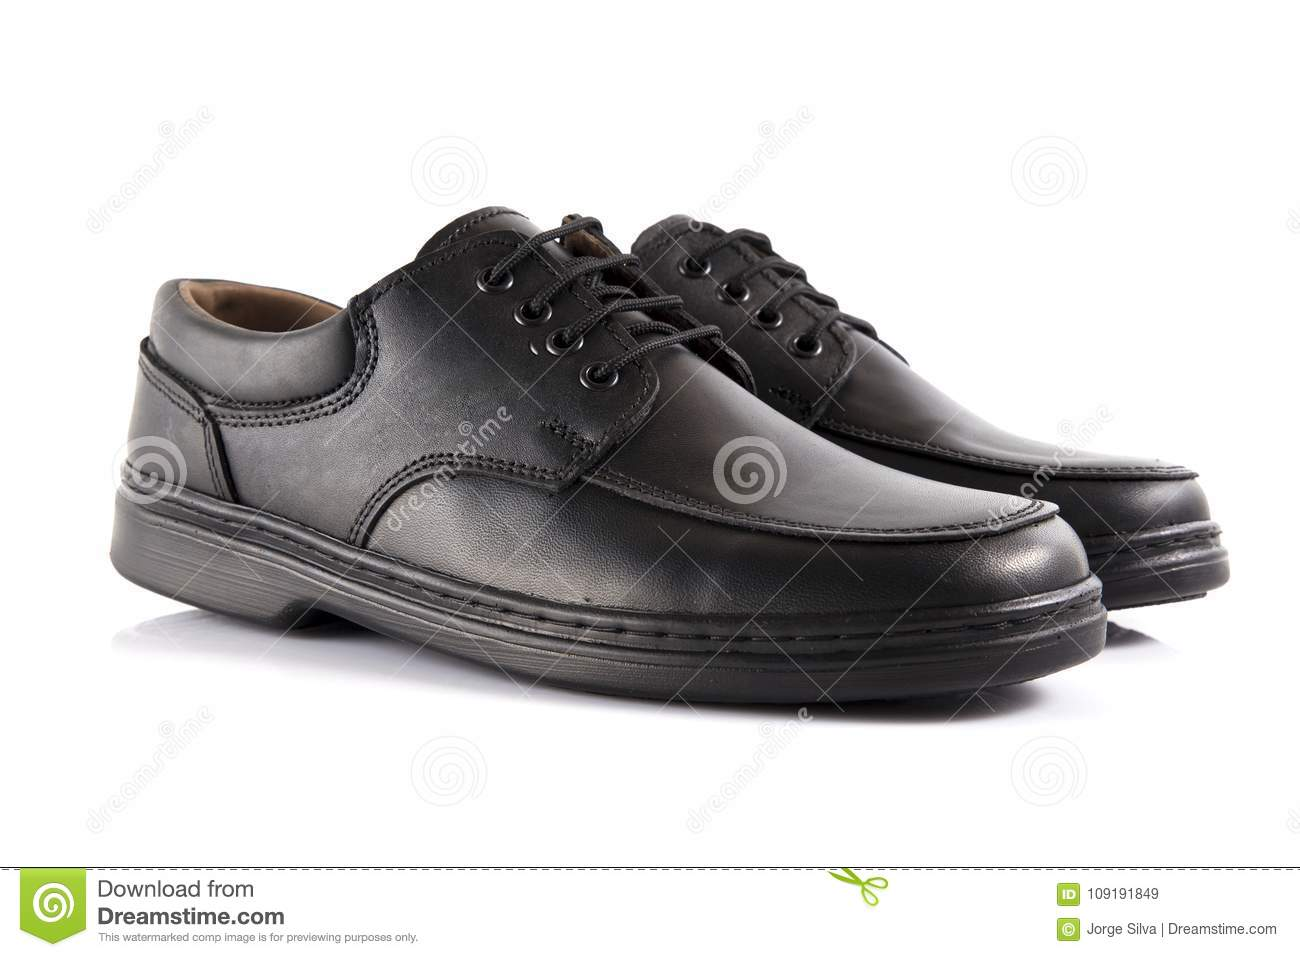 Male Black Leather Shoe on Black Background, Isolated Product. Comfortable  footwear.